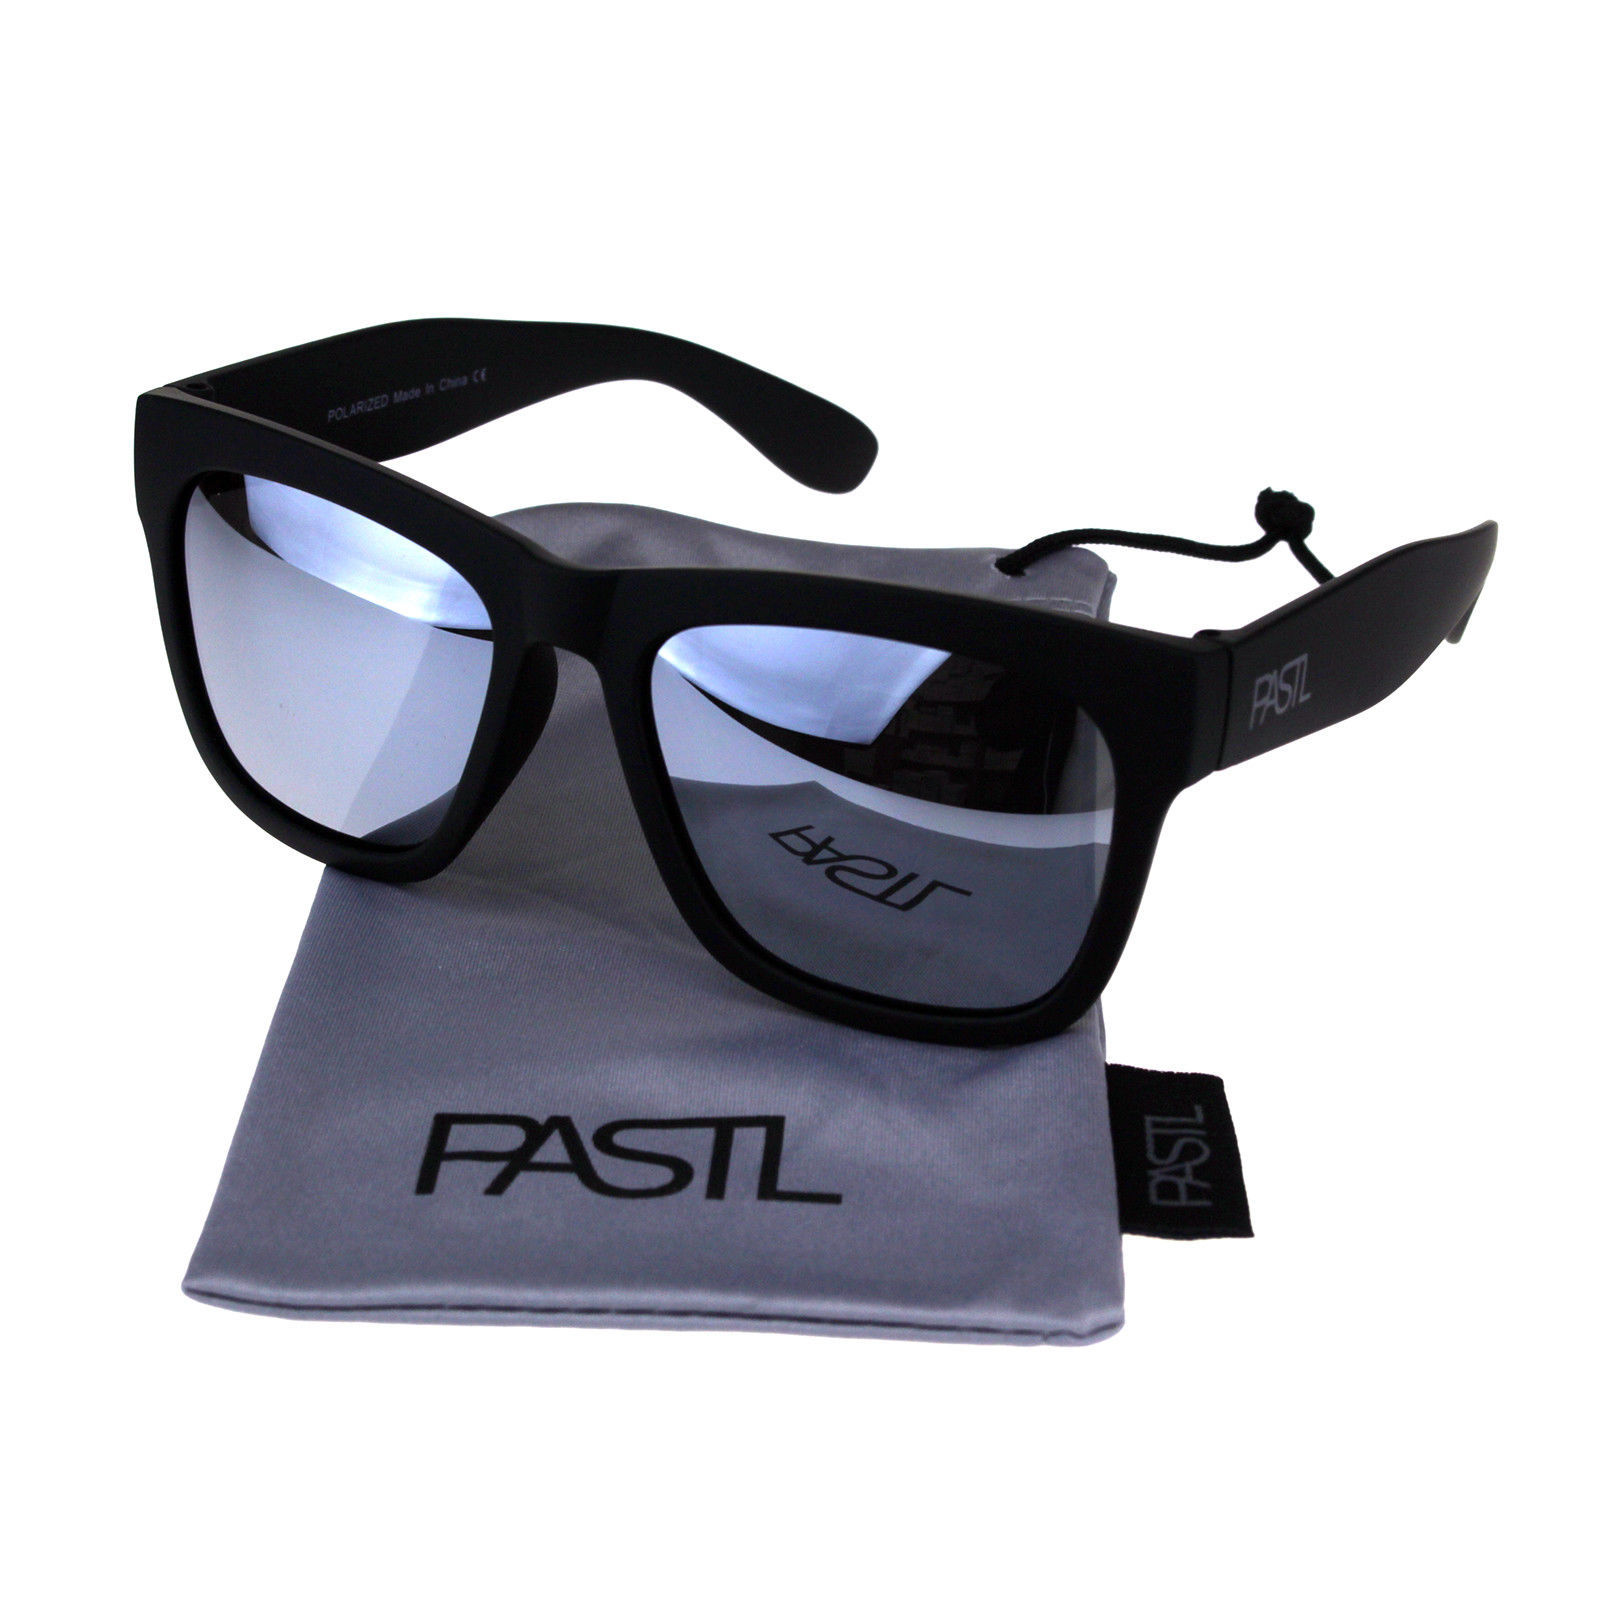 PASTL Sunglasses Polarized Lens Soft Matted Black Square Frame Unisex